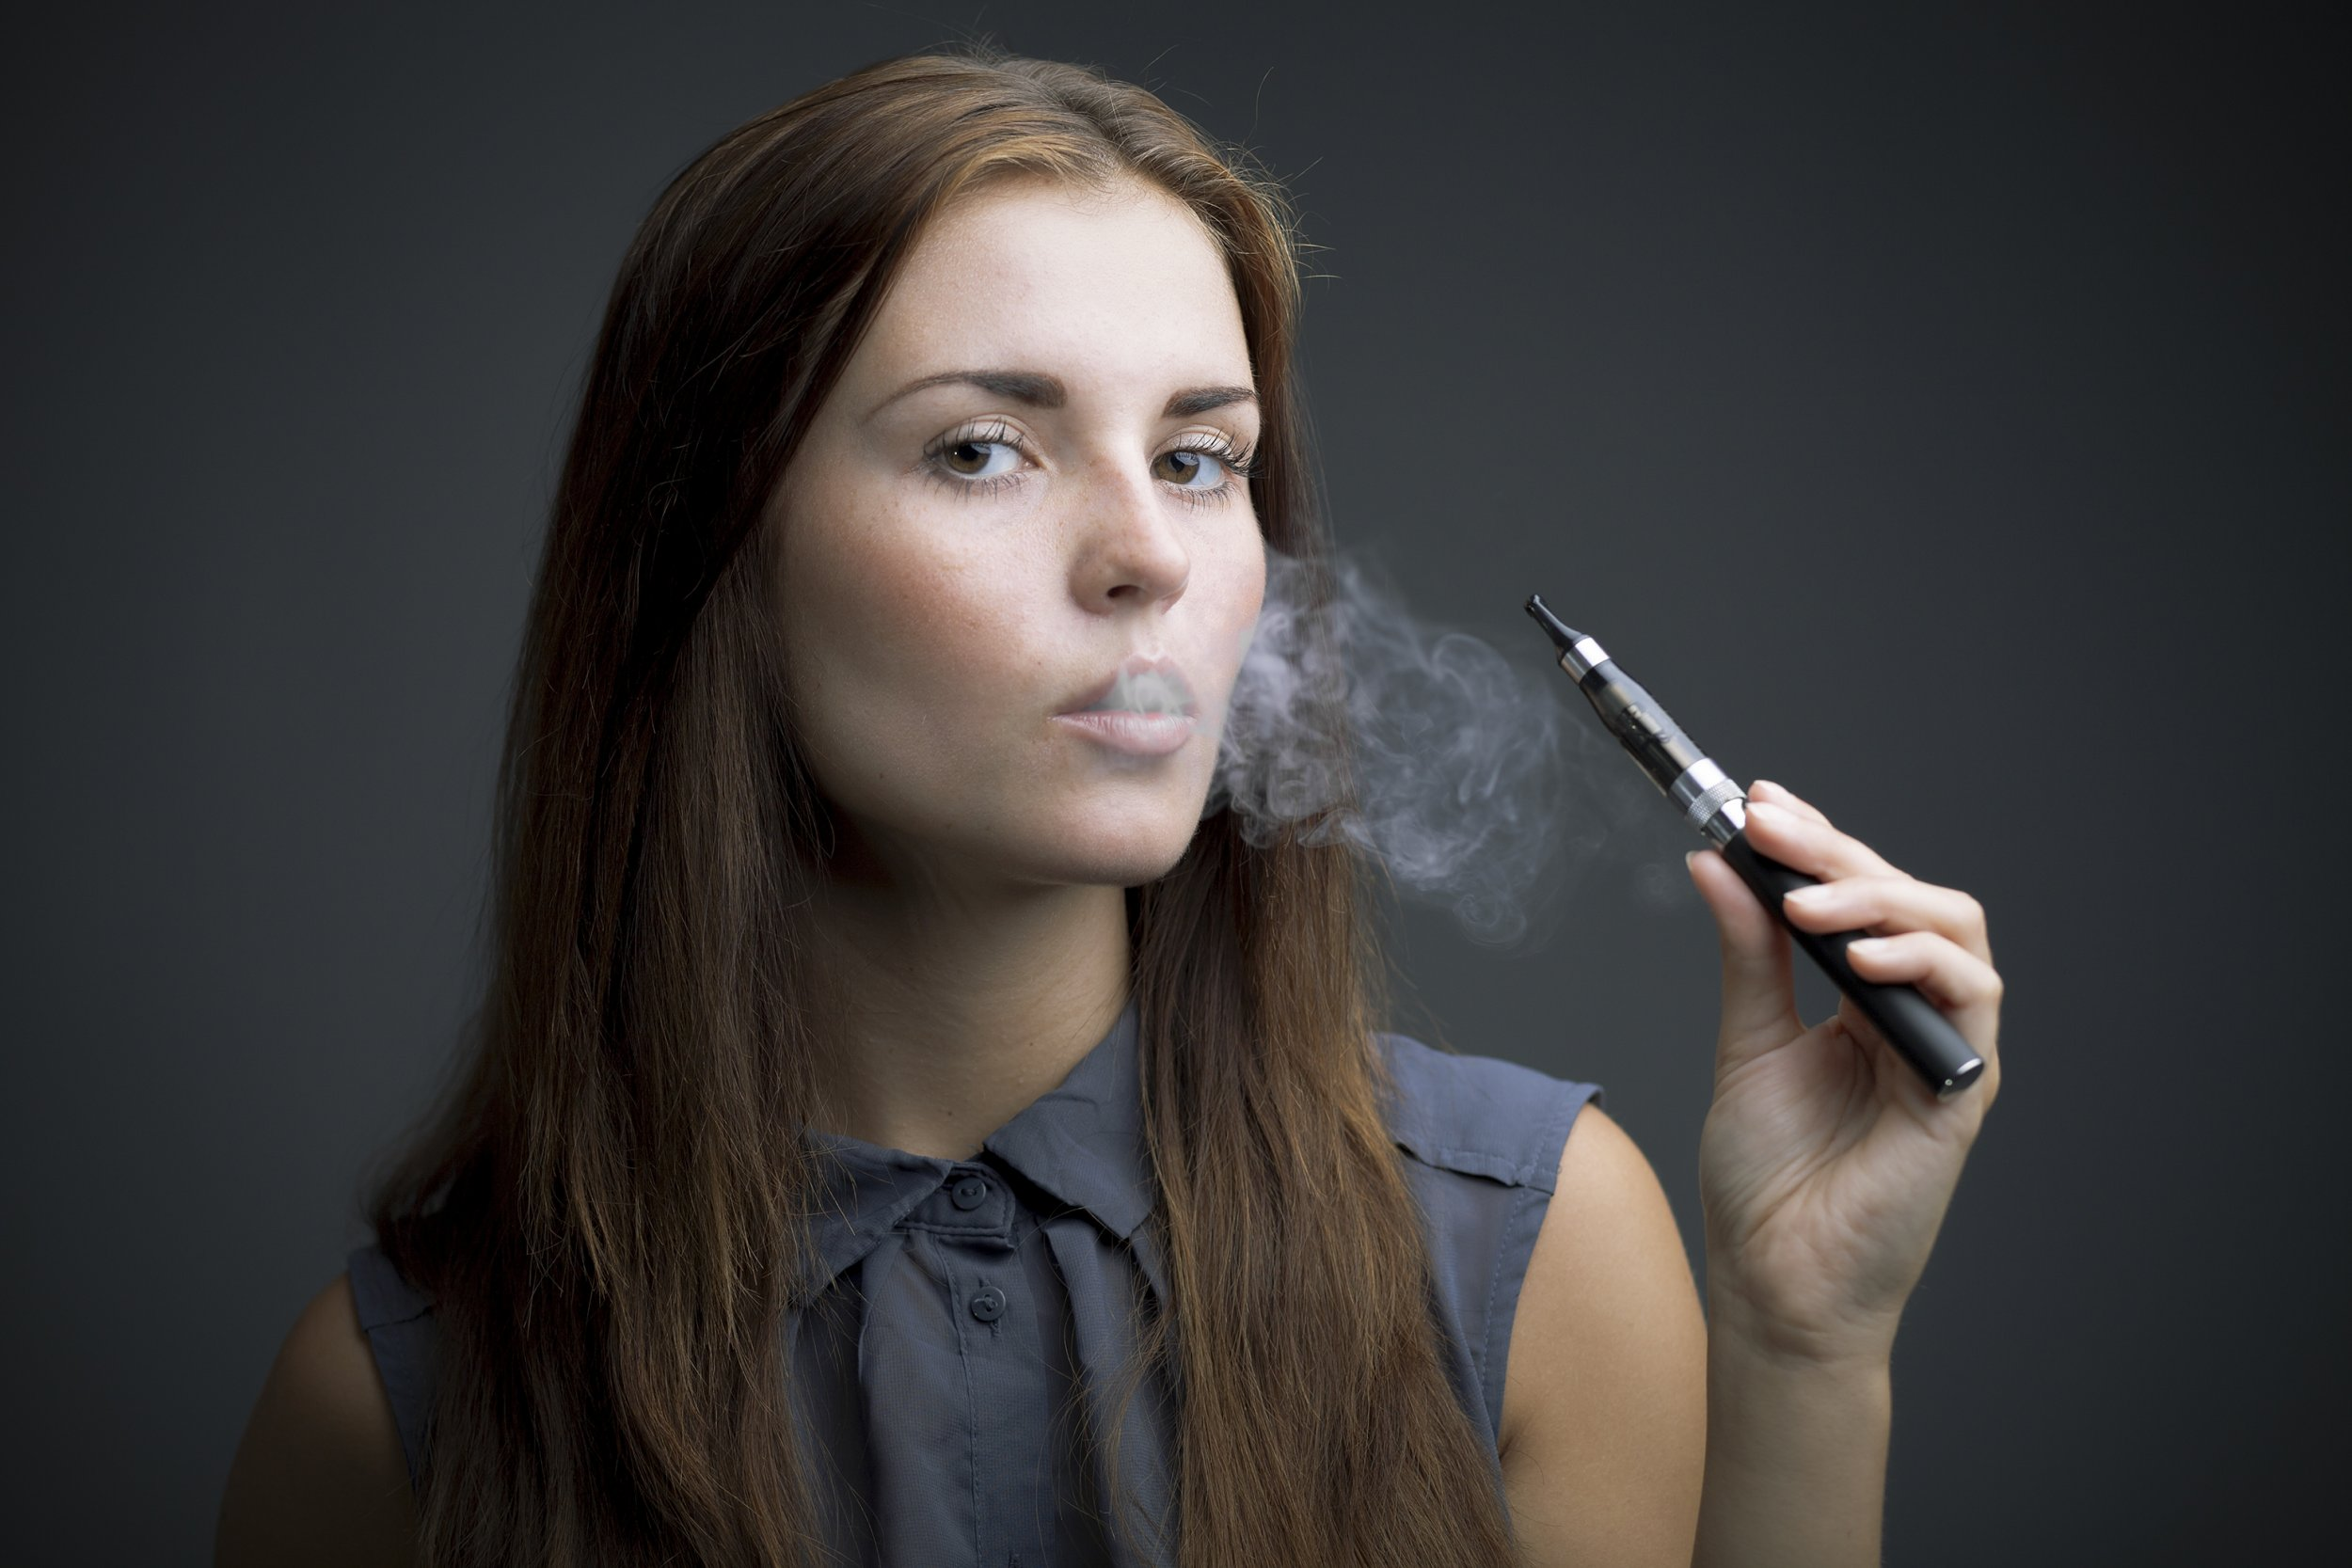 Vaping and Using Nicotine Patches During Pregnancy Could